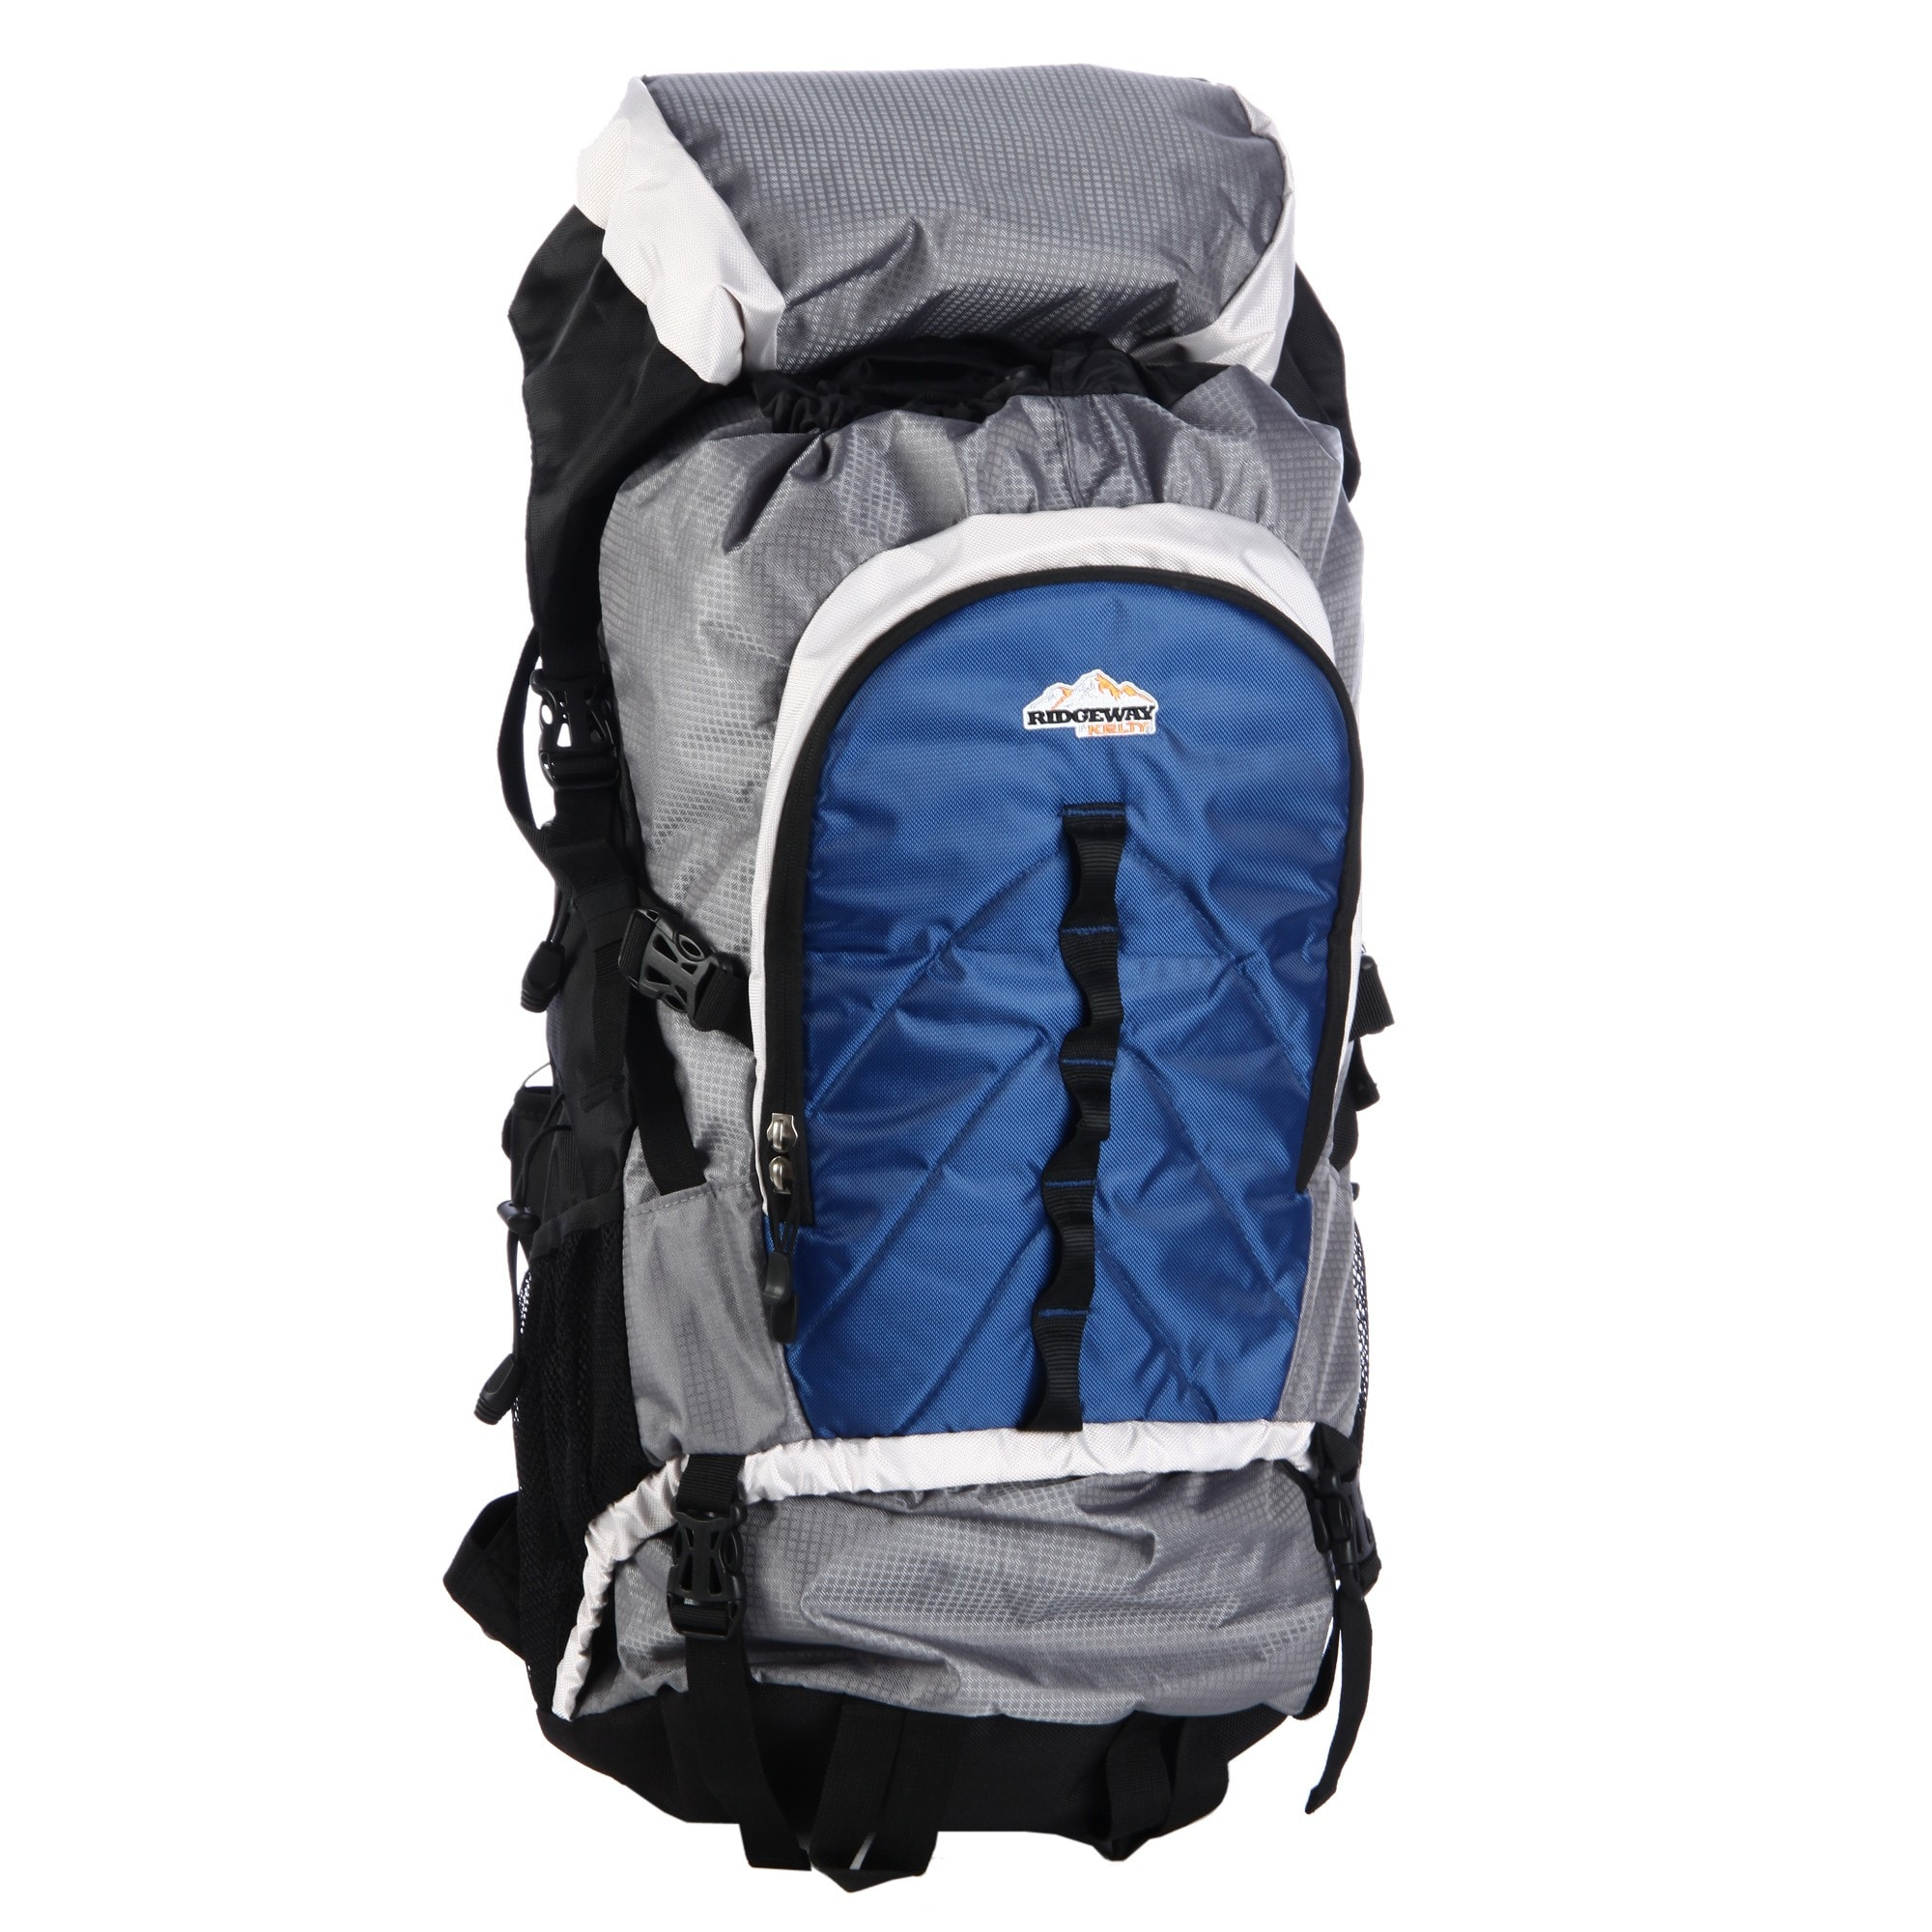 26f186432 High Sierra Backpack Costco Warranty- Fenix Toulouse Handball